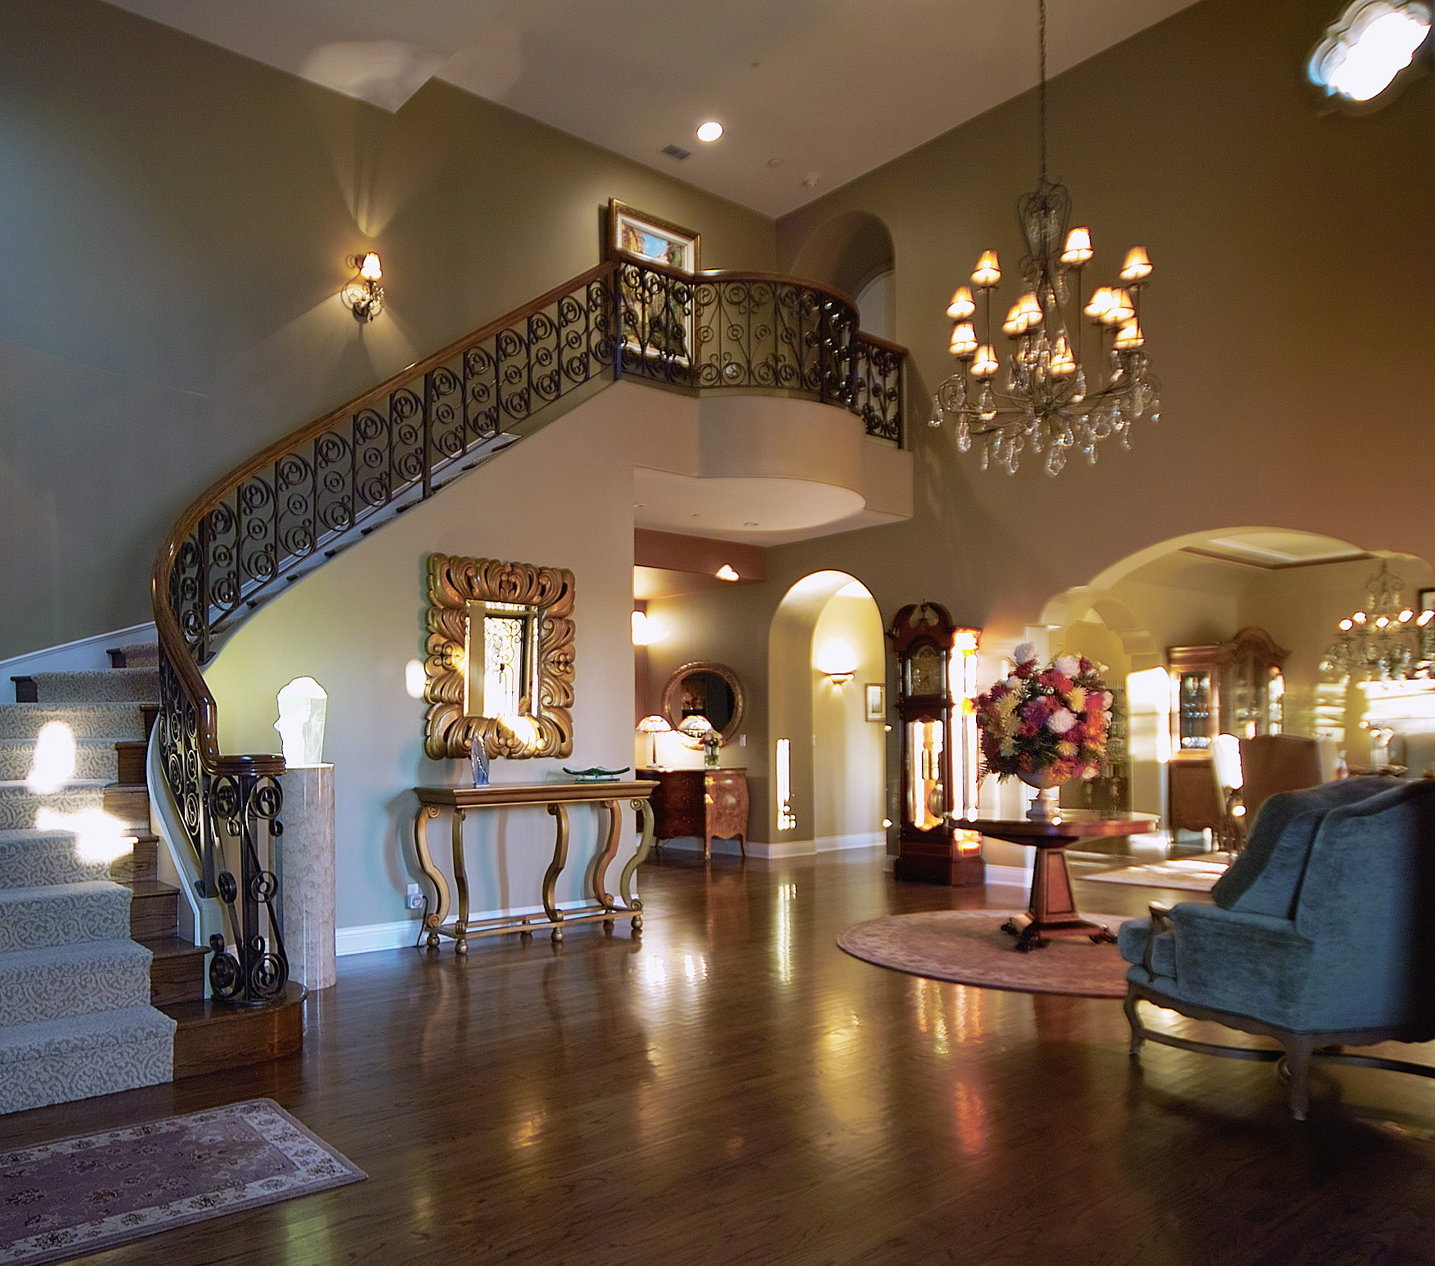 This is truly a grand foyer with unusual architectural